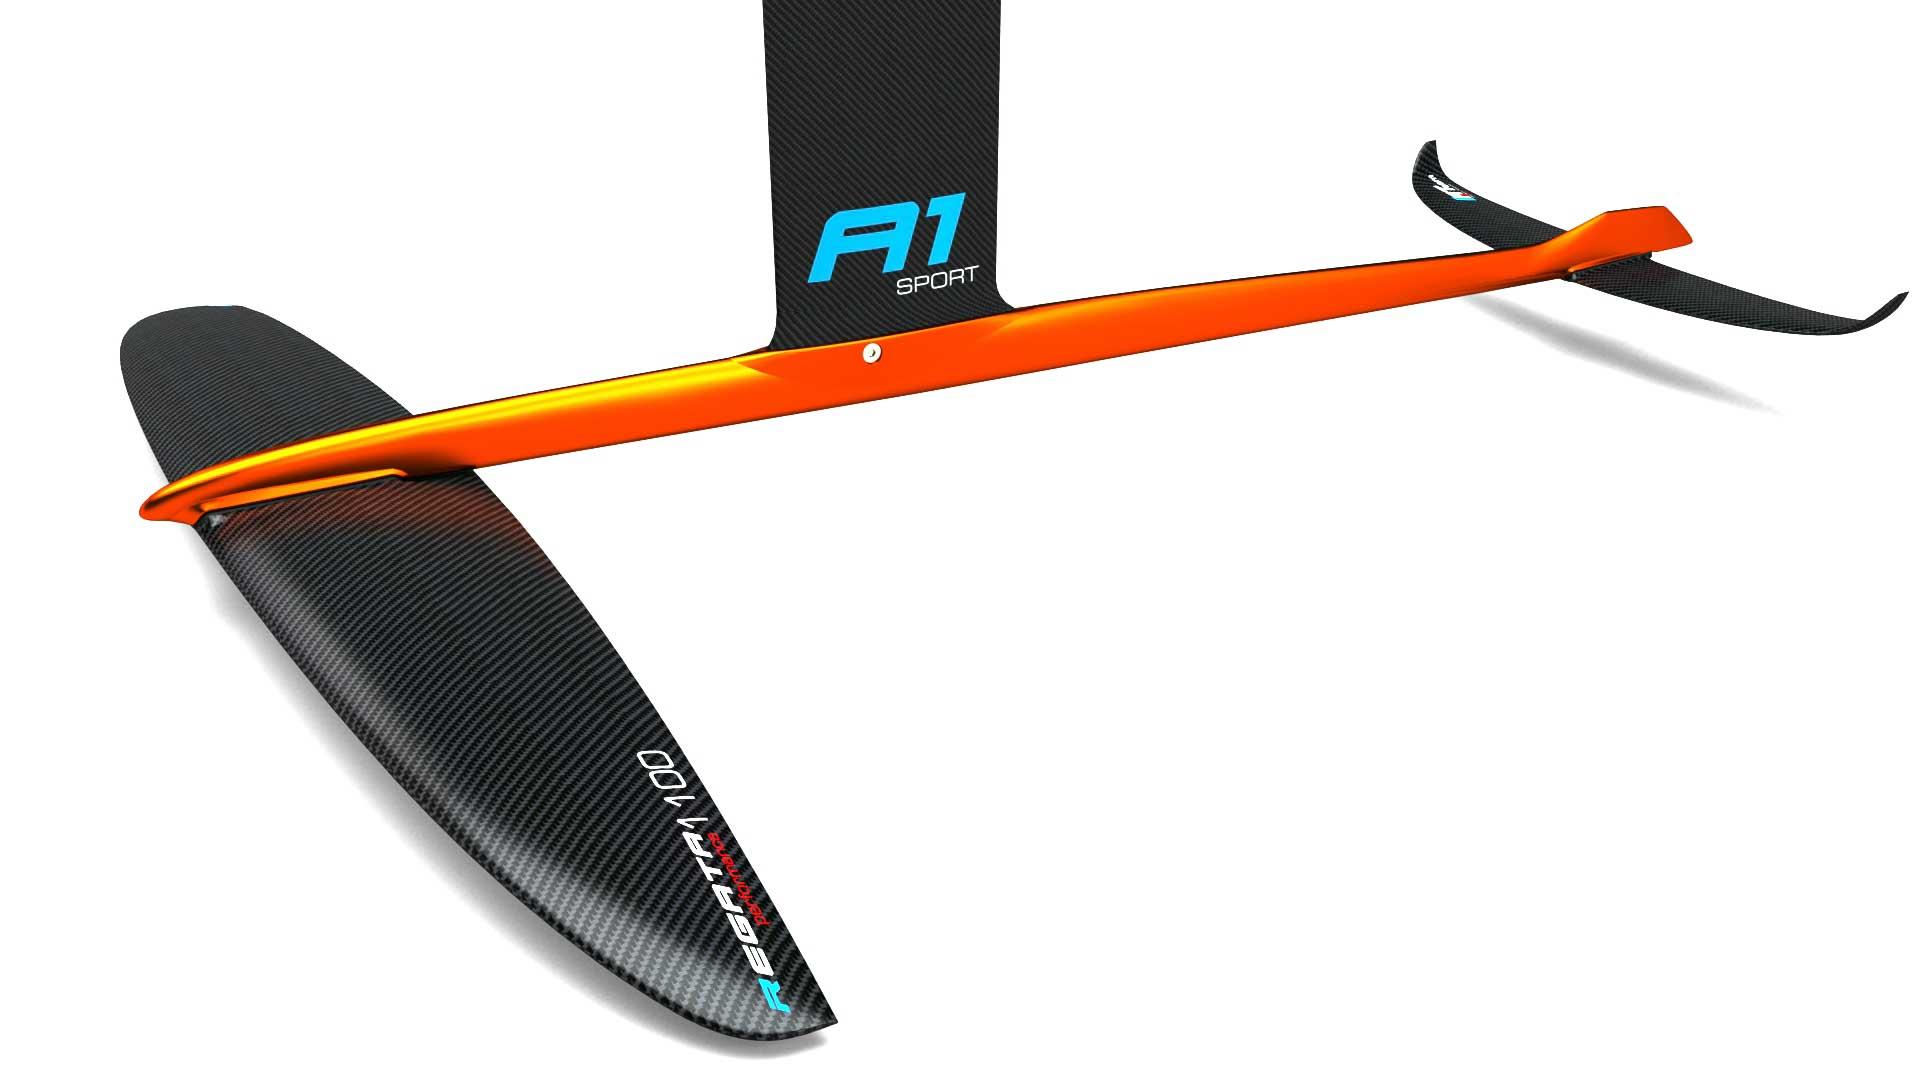 Windfoil alpinefoil a1 sport carbon regatta 1100 11